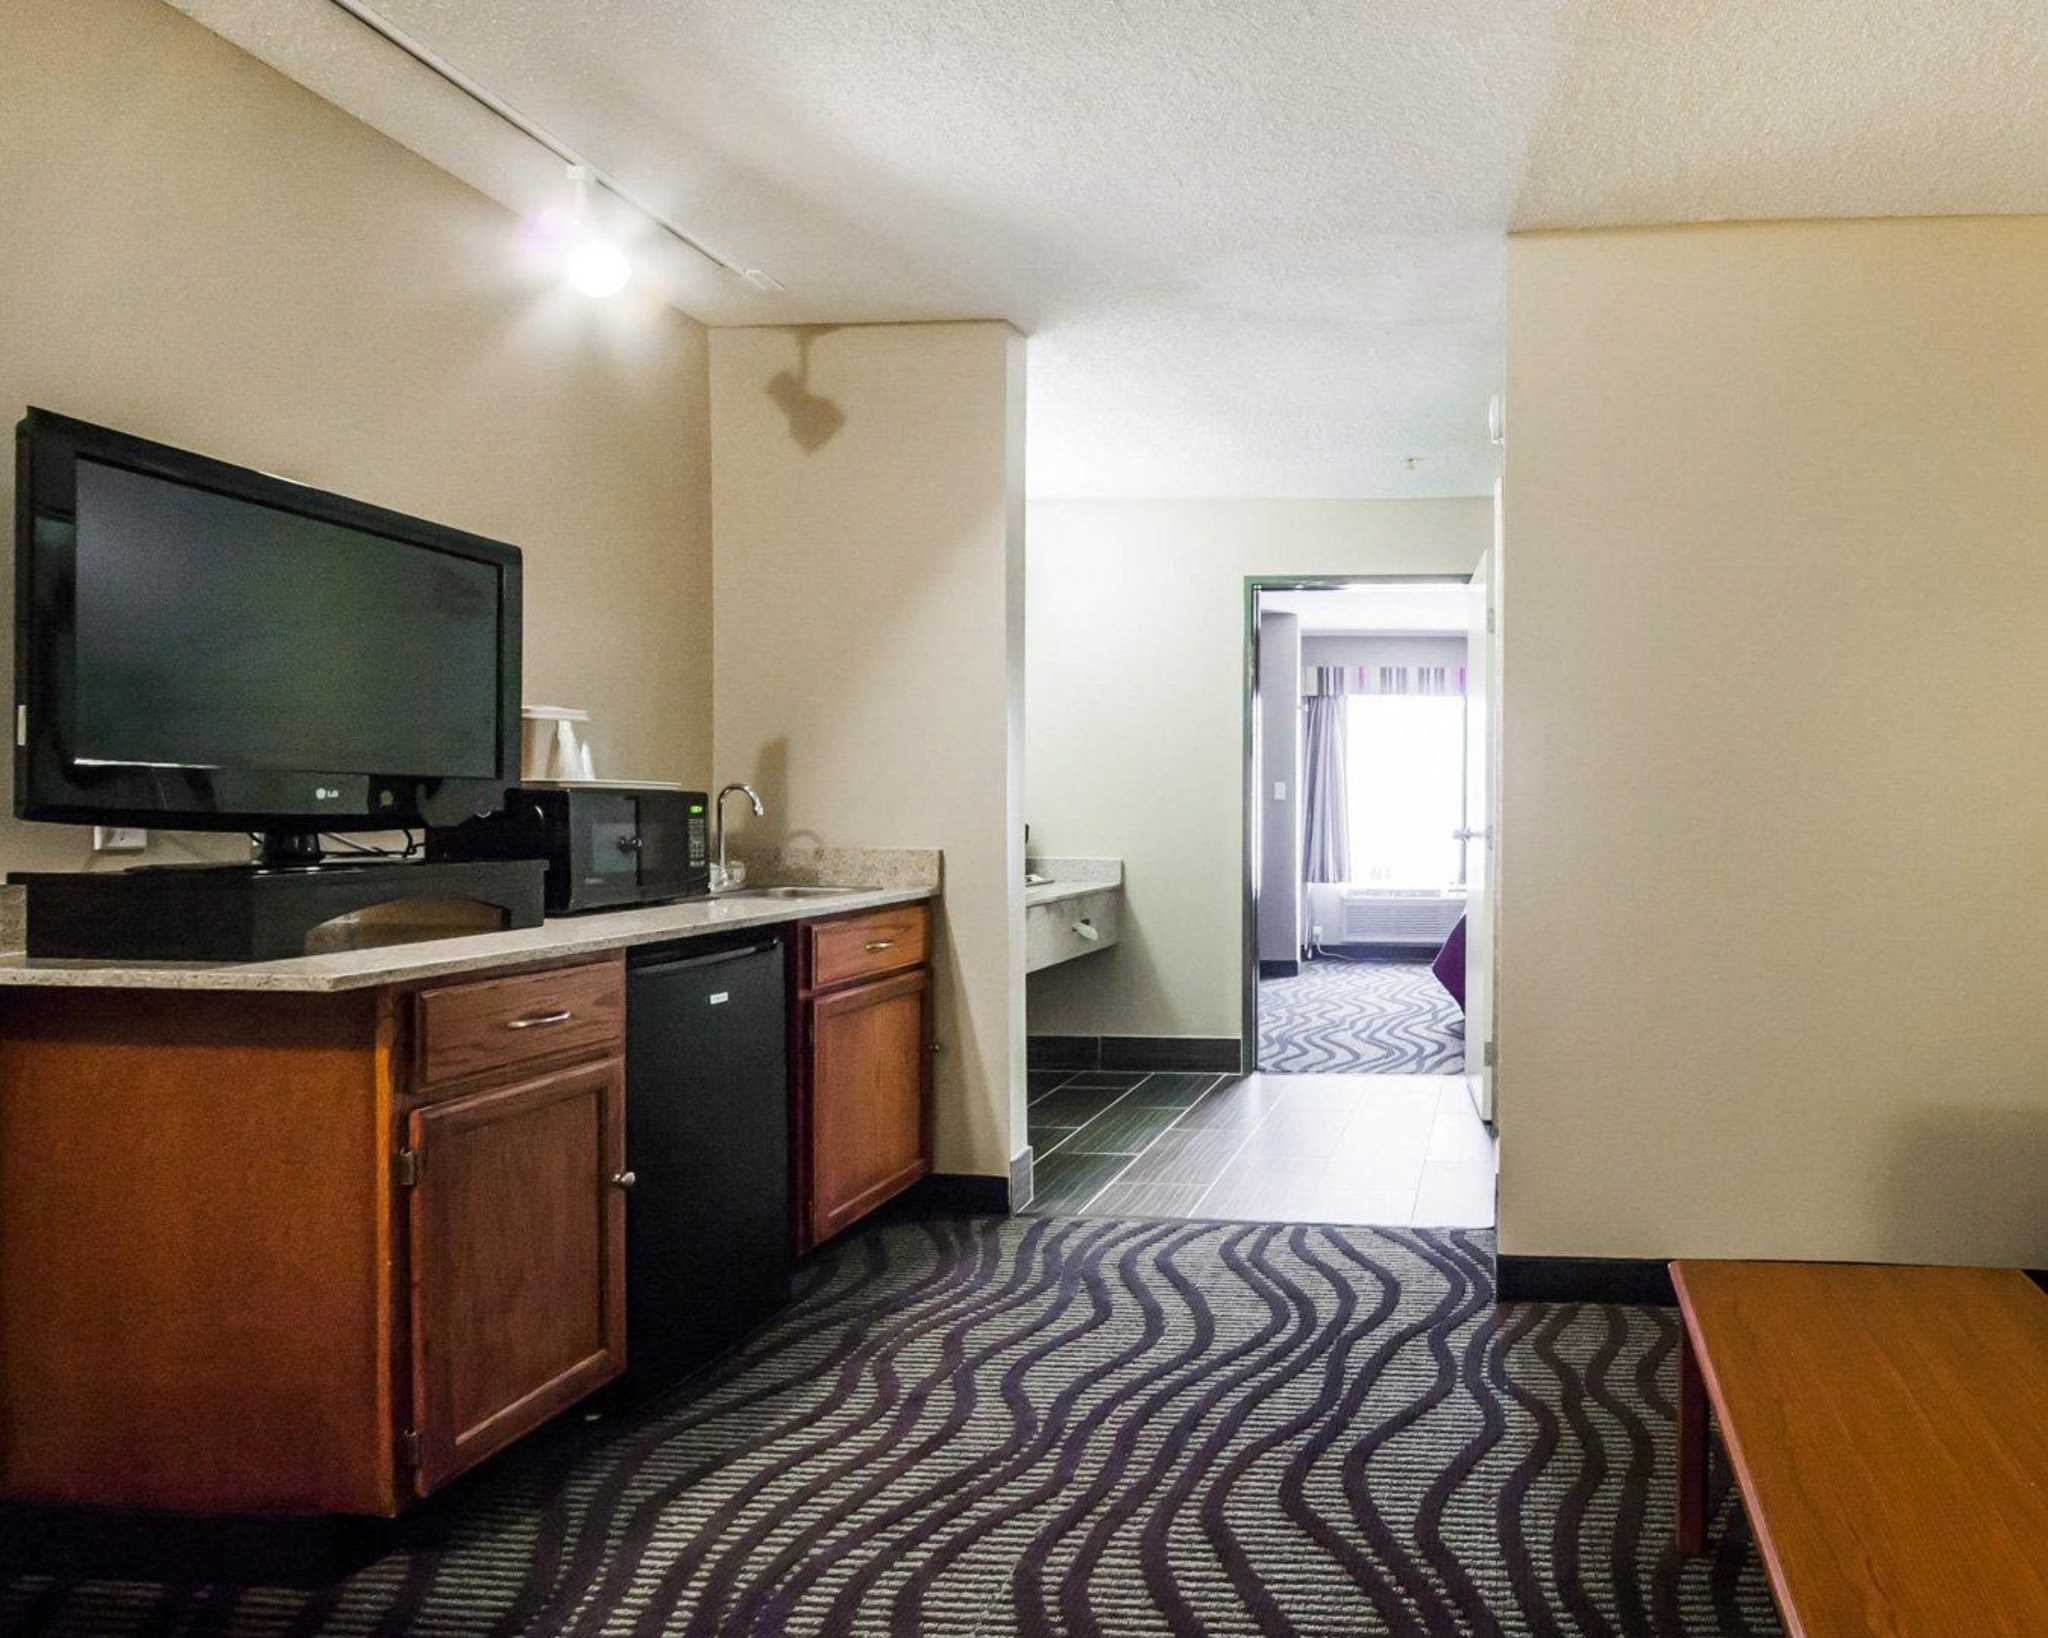 Quality Suites Near Wolfchase Galleria Cordova Tennessee Tn Localdatabase Com